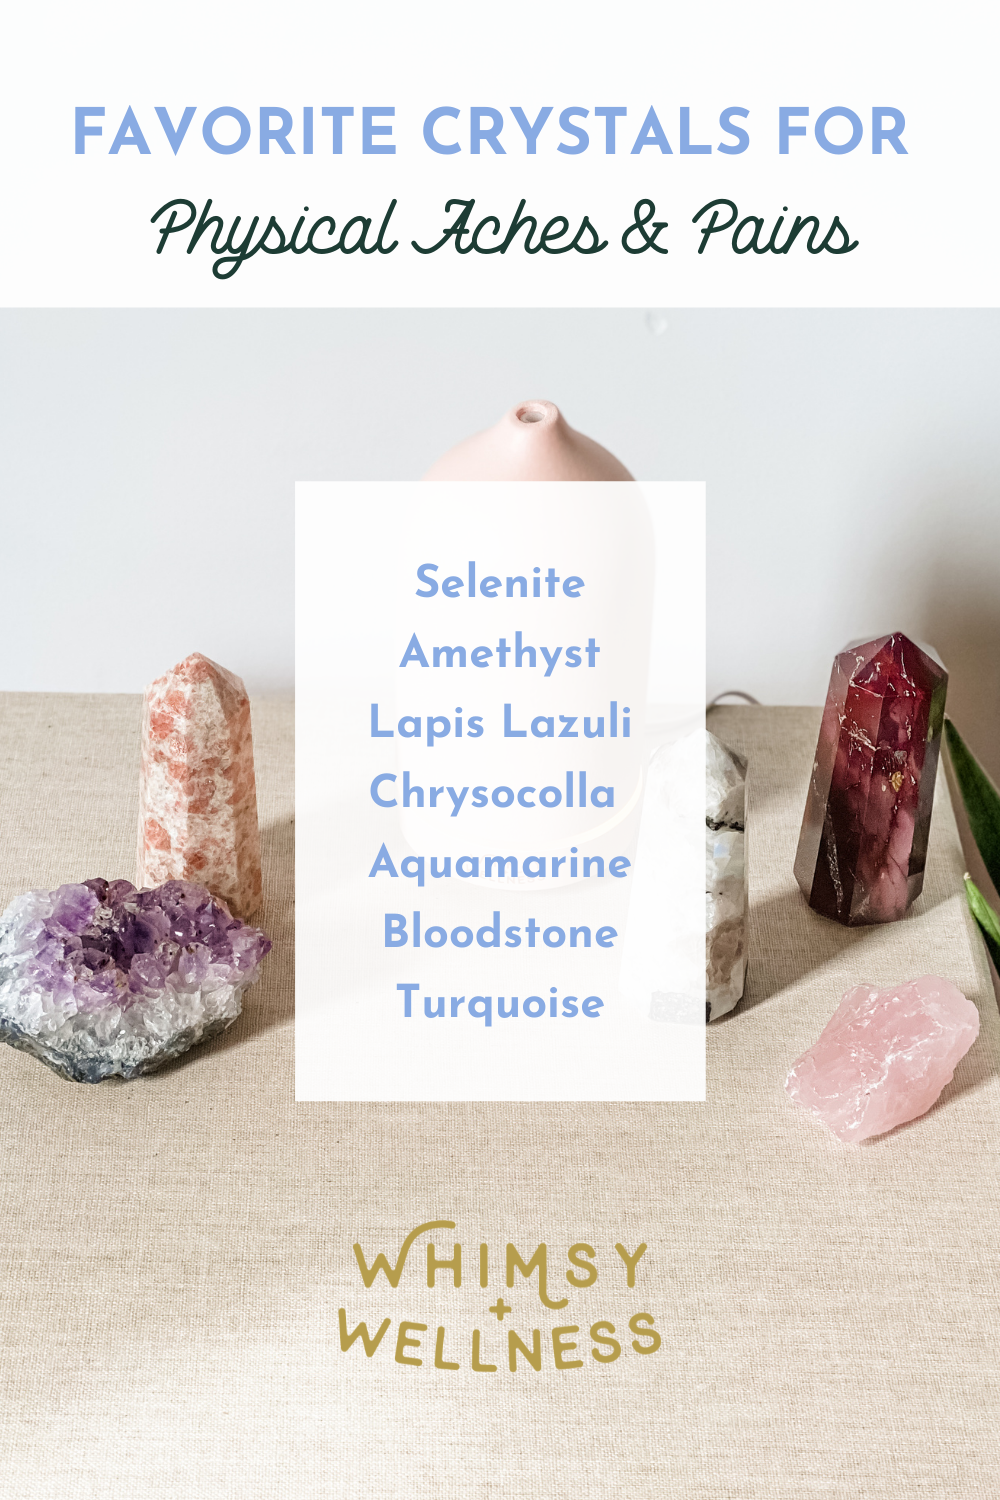 Crystals for pain